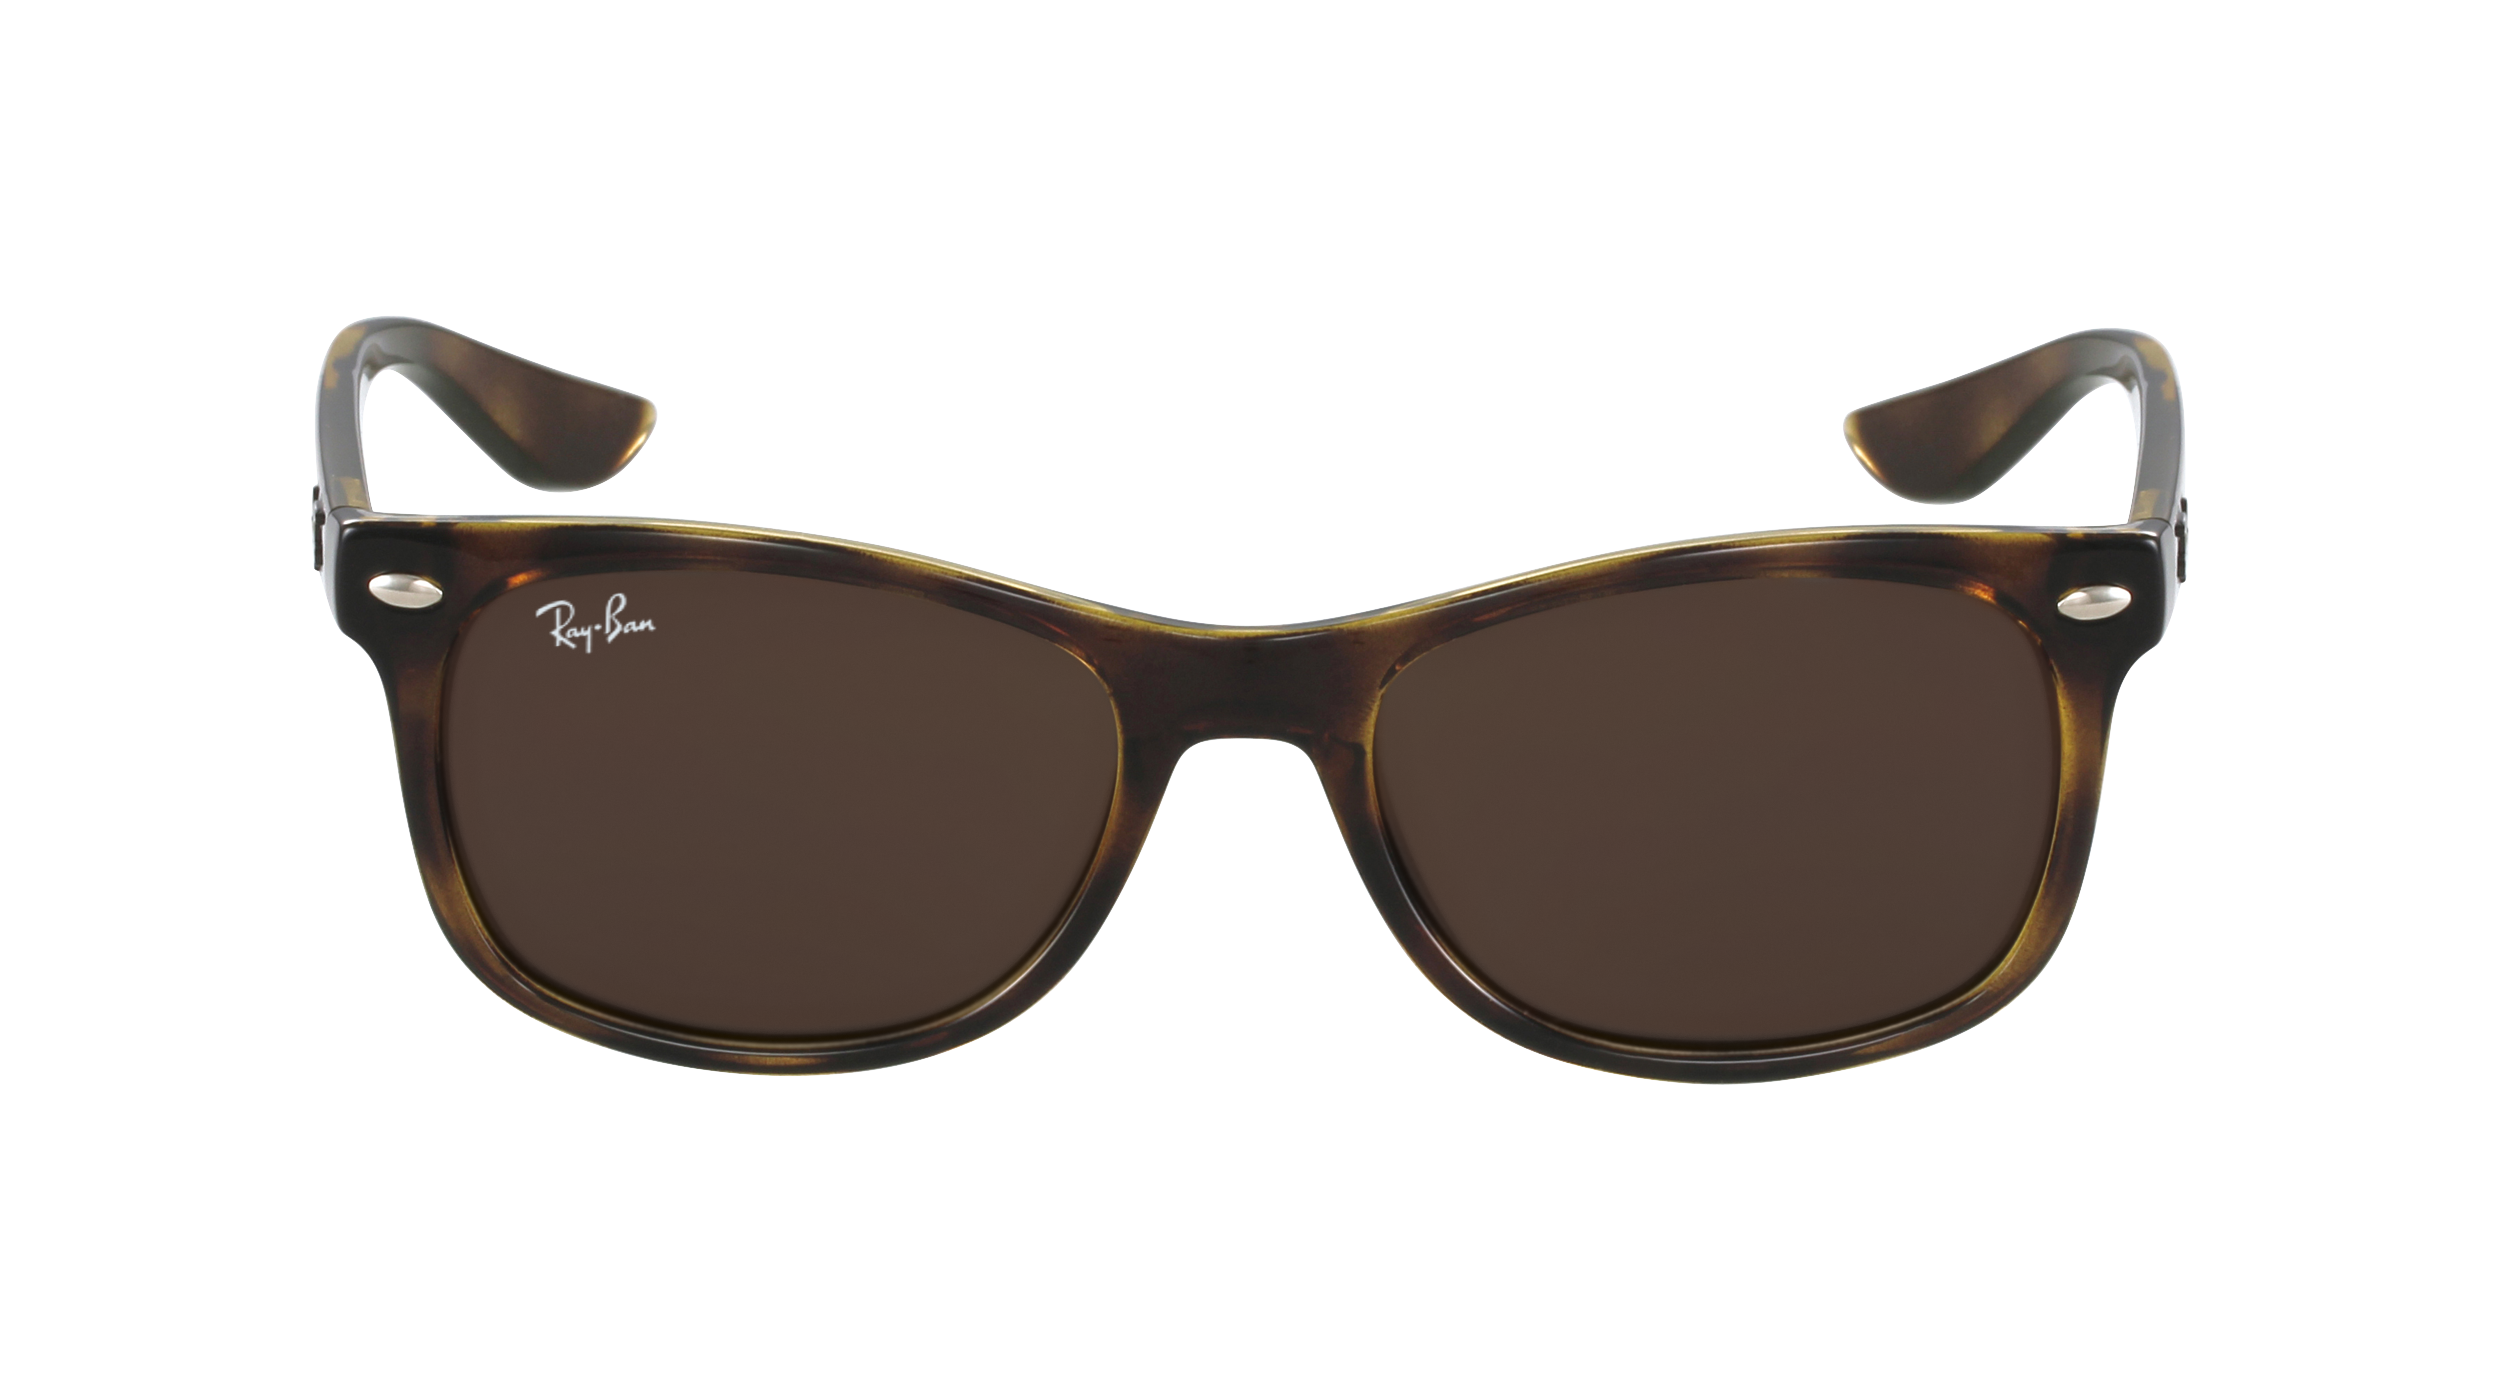 Ray-Ban Youth RJ9052S-S-15273-47-15-125